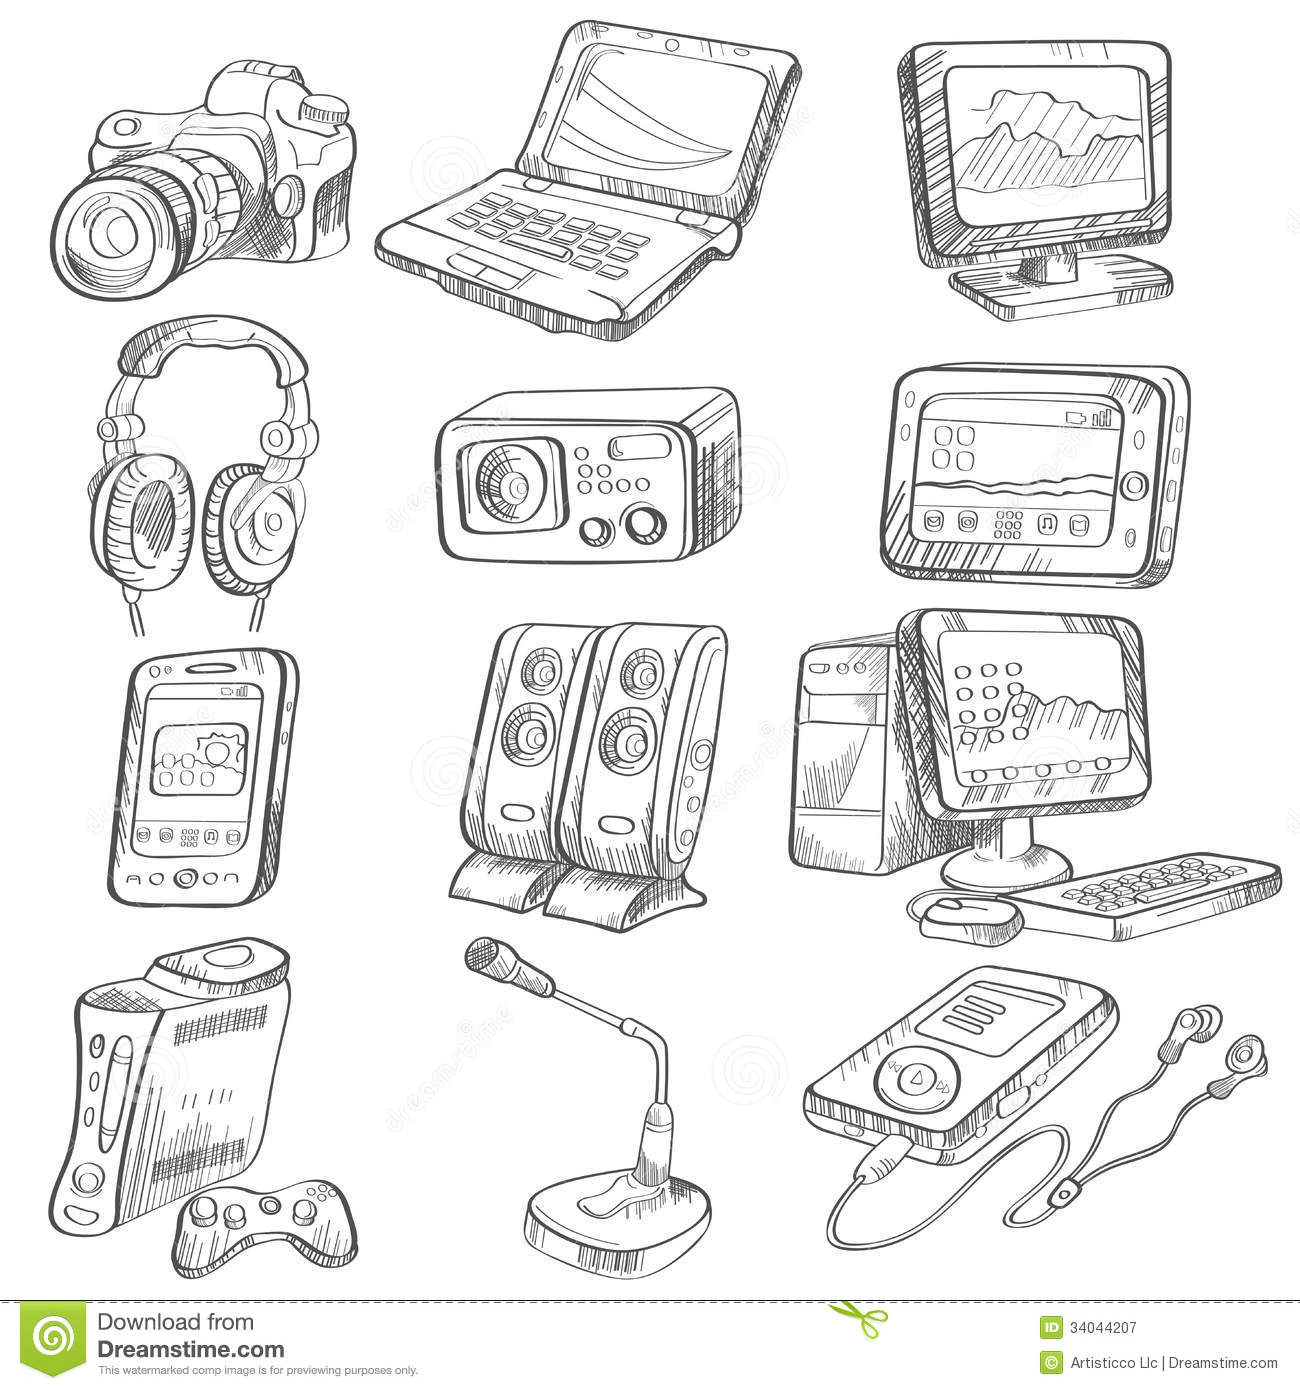 Pencil Drawing Of Electronic Gadget Stock Vector - Illustration of ...